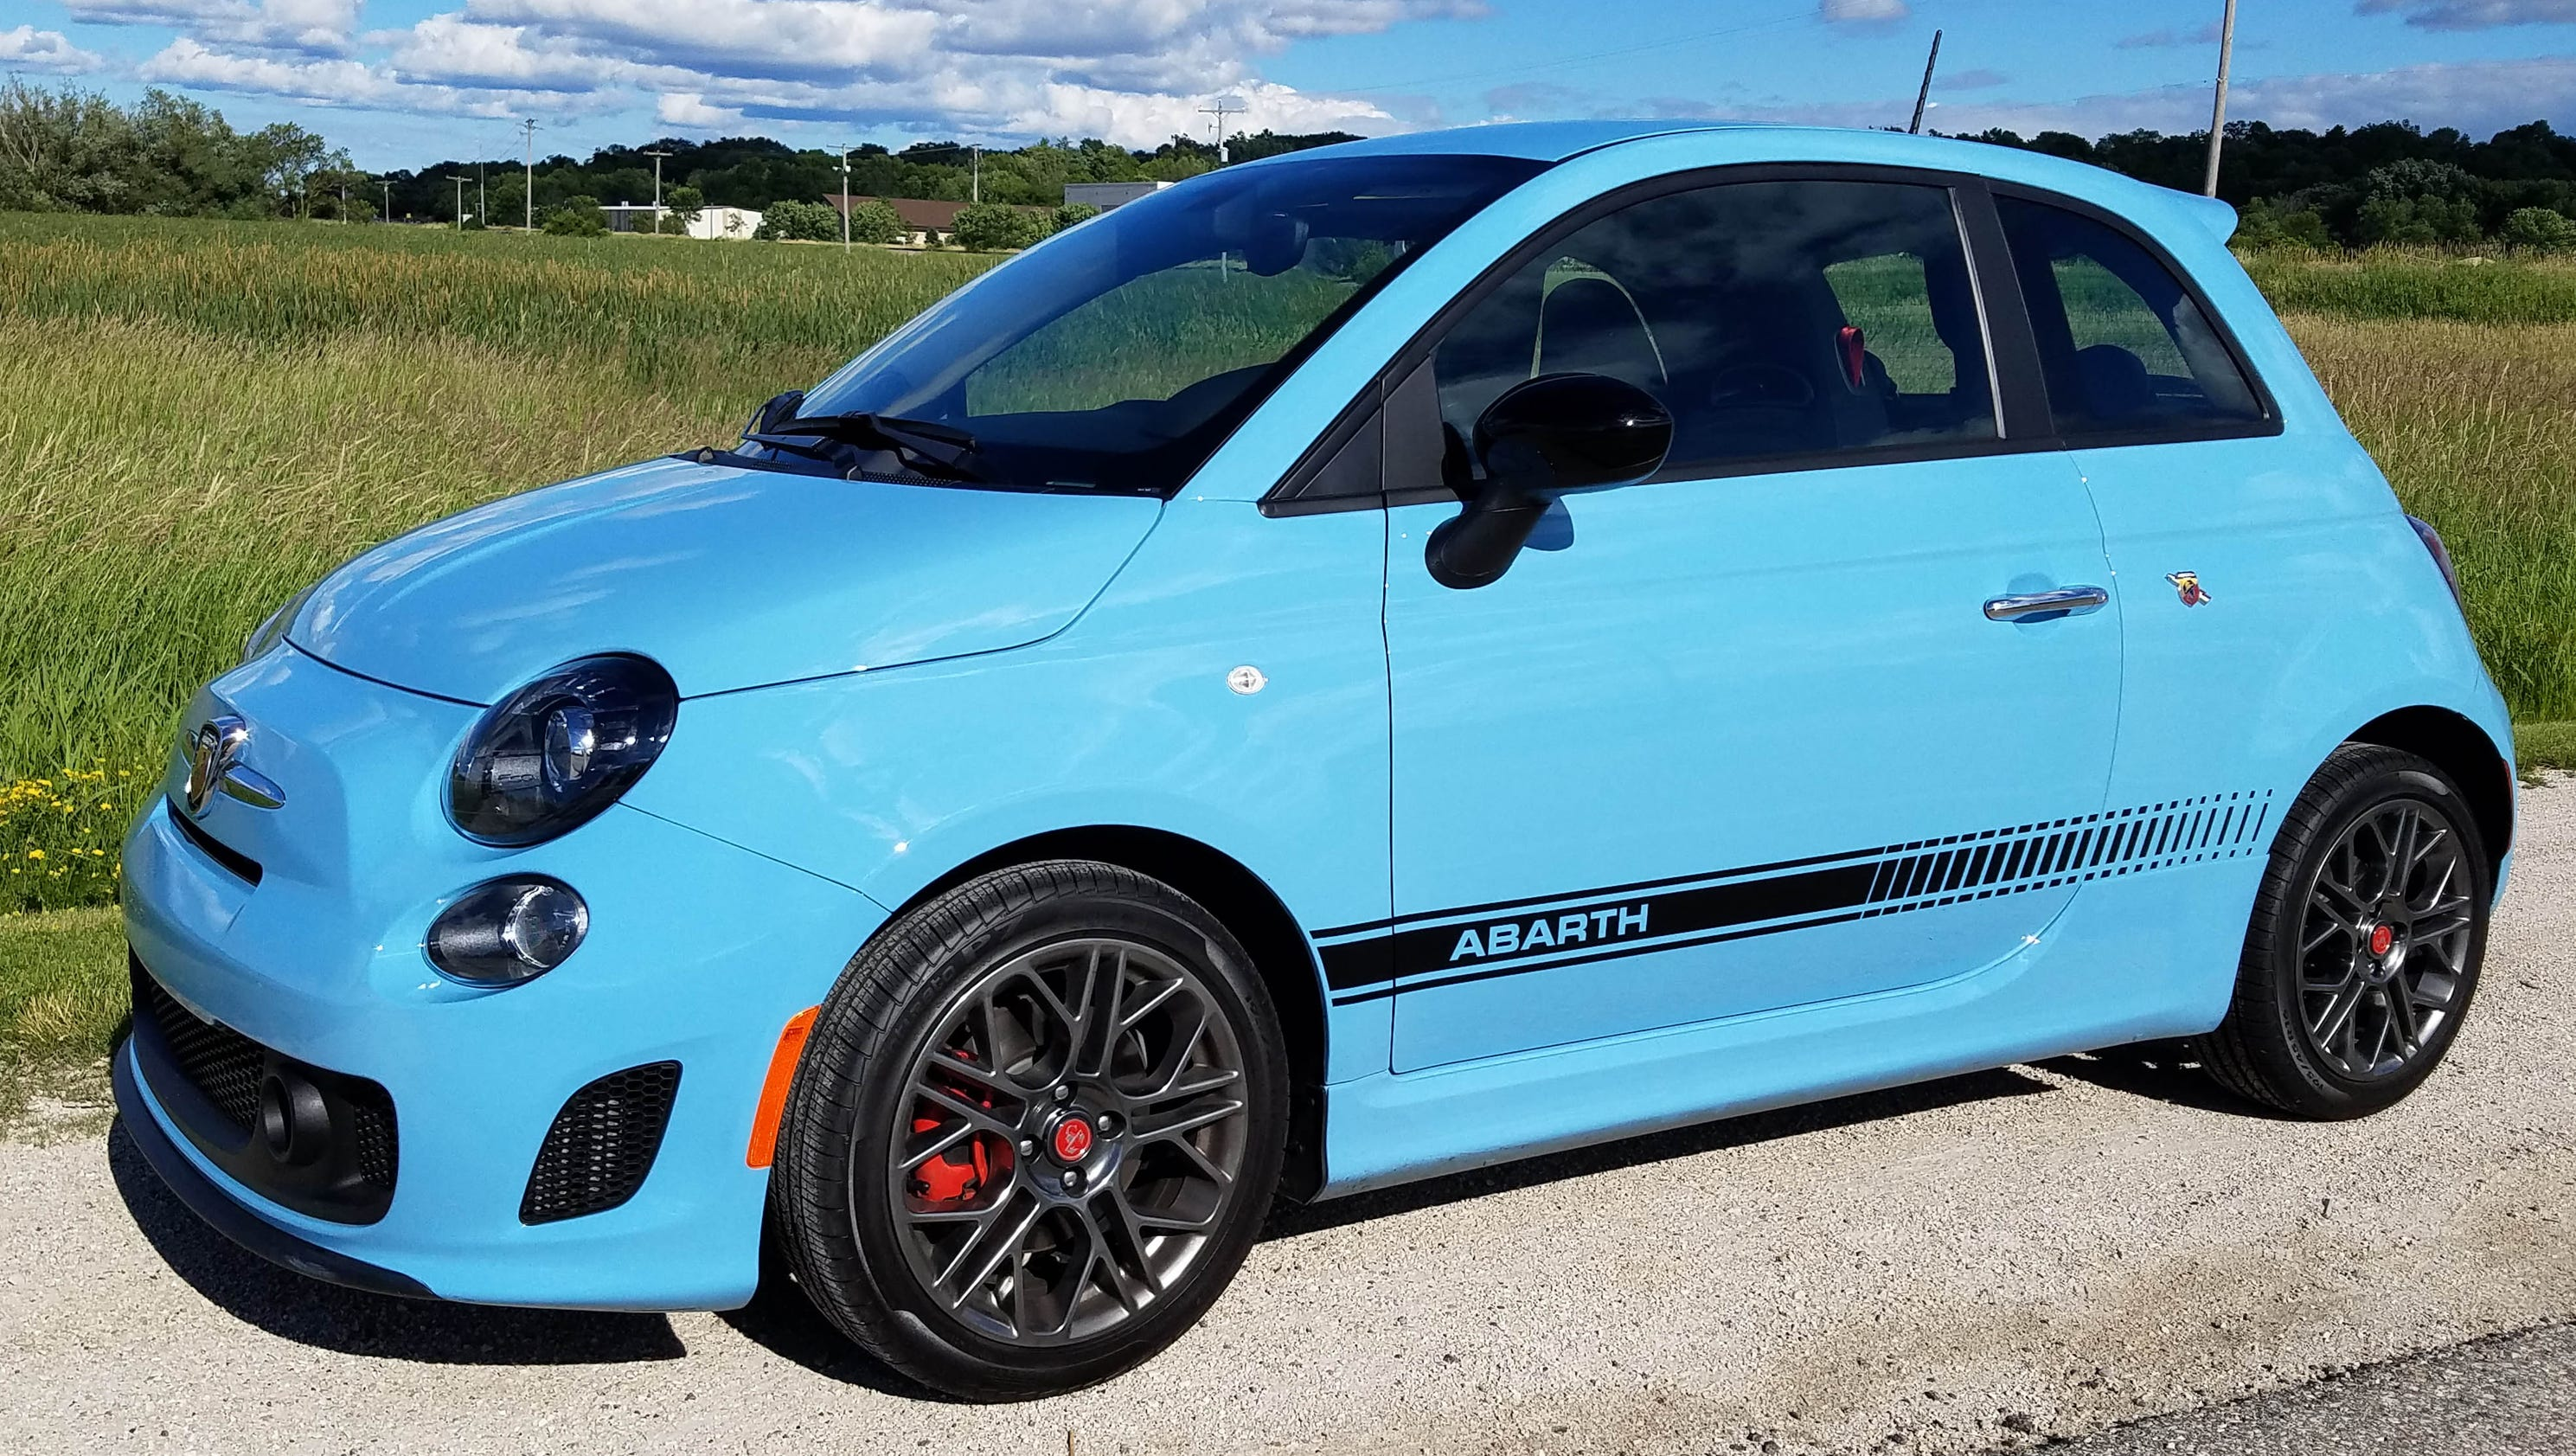 savage: at $21,000, fiat 500 abarth is a tiny, bargain-priced joy